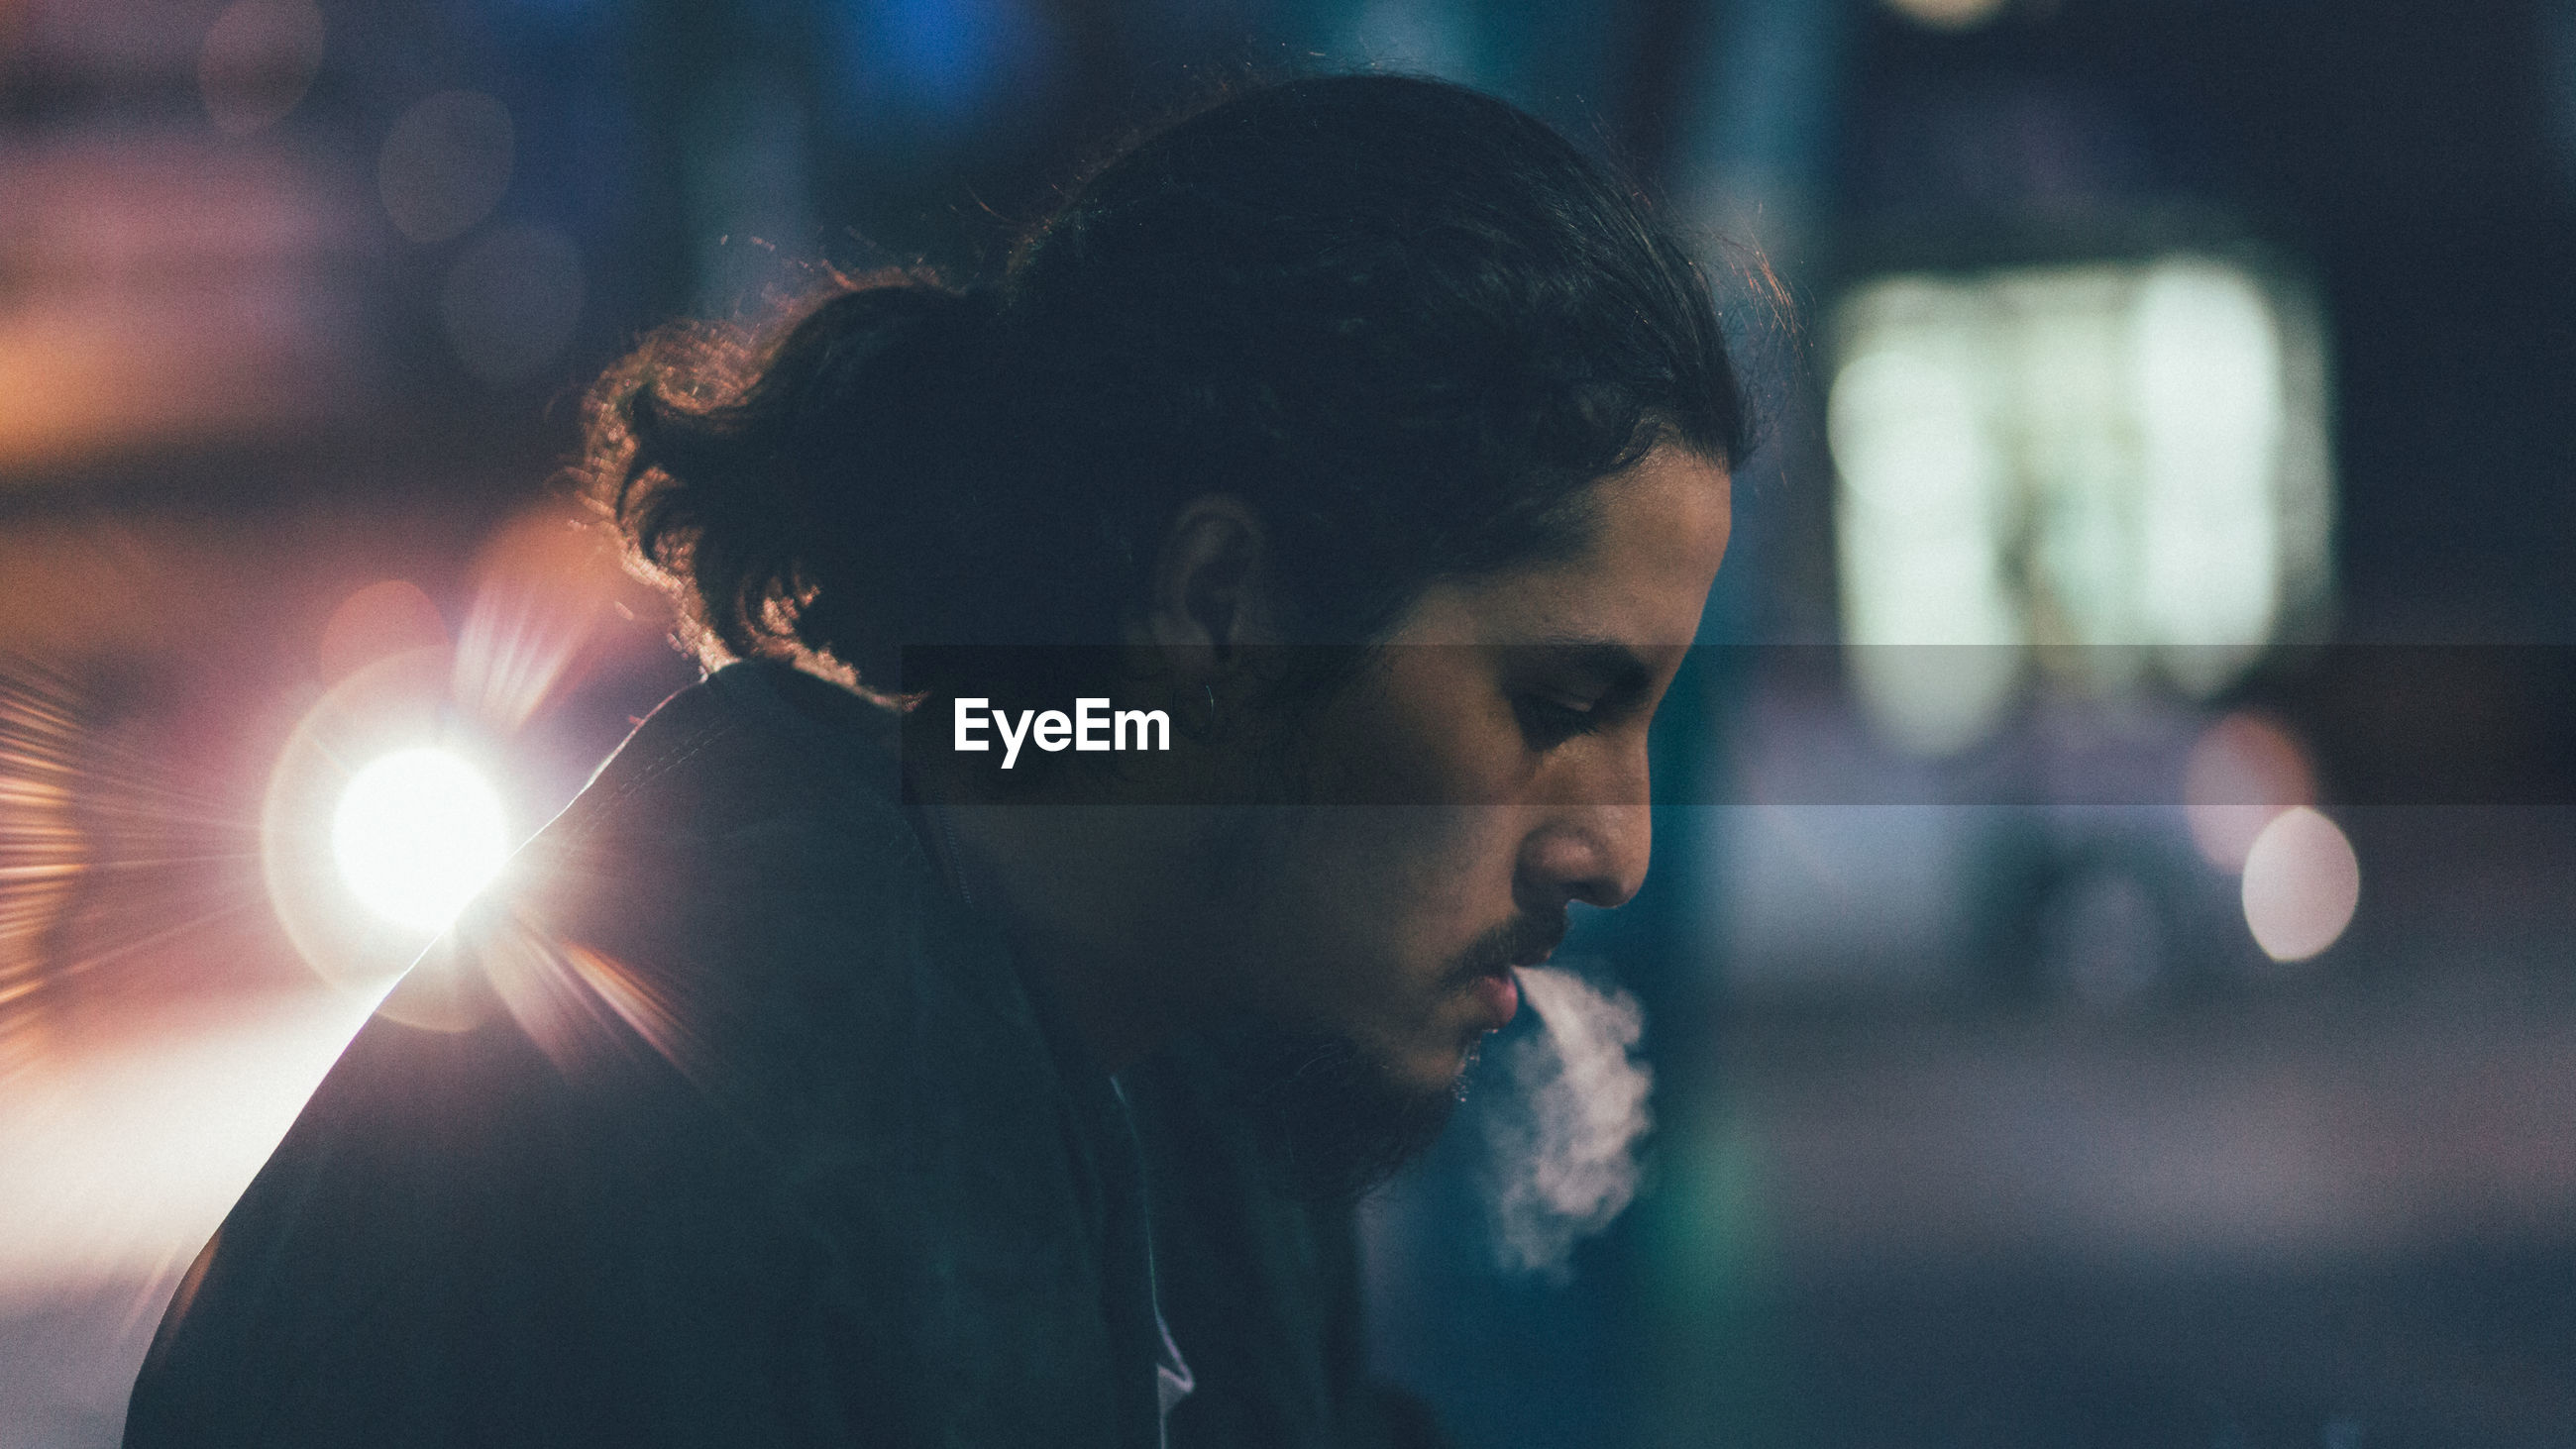 Profile view of man smoking in city at night